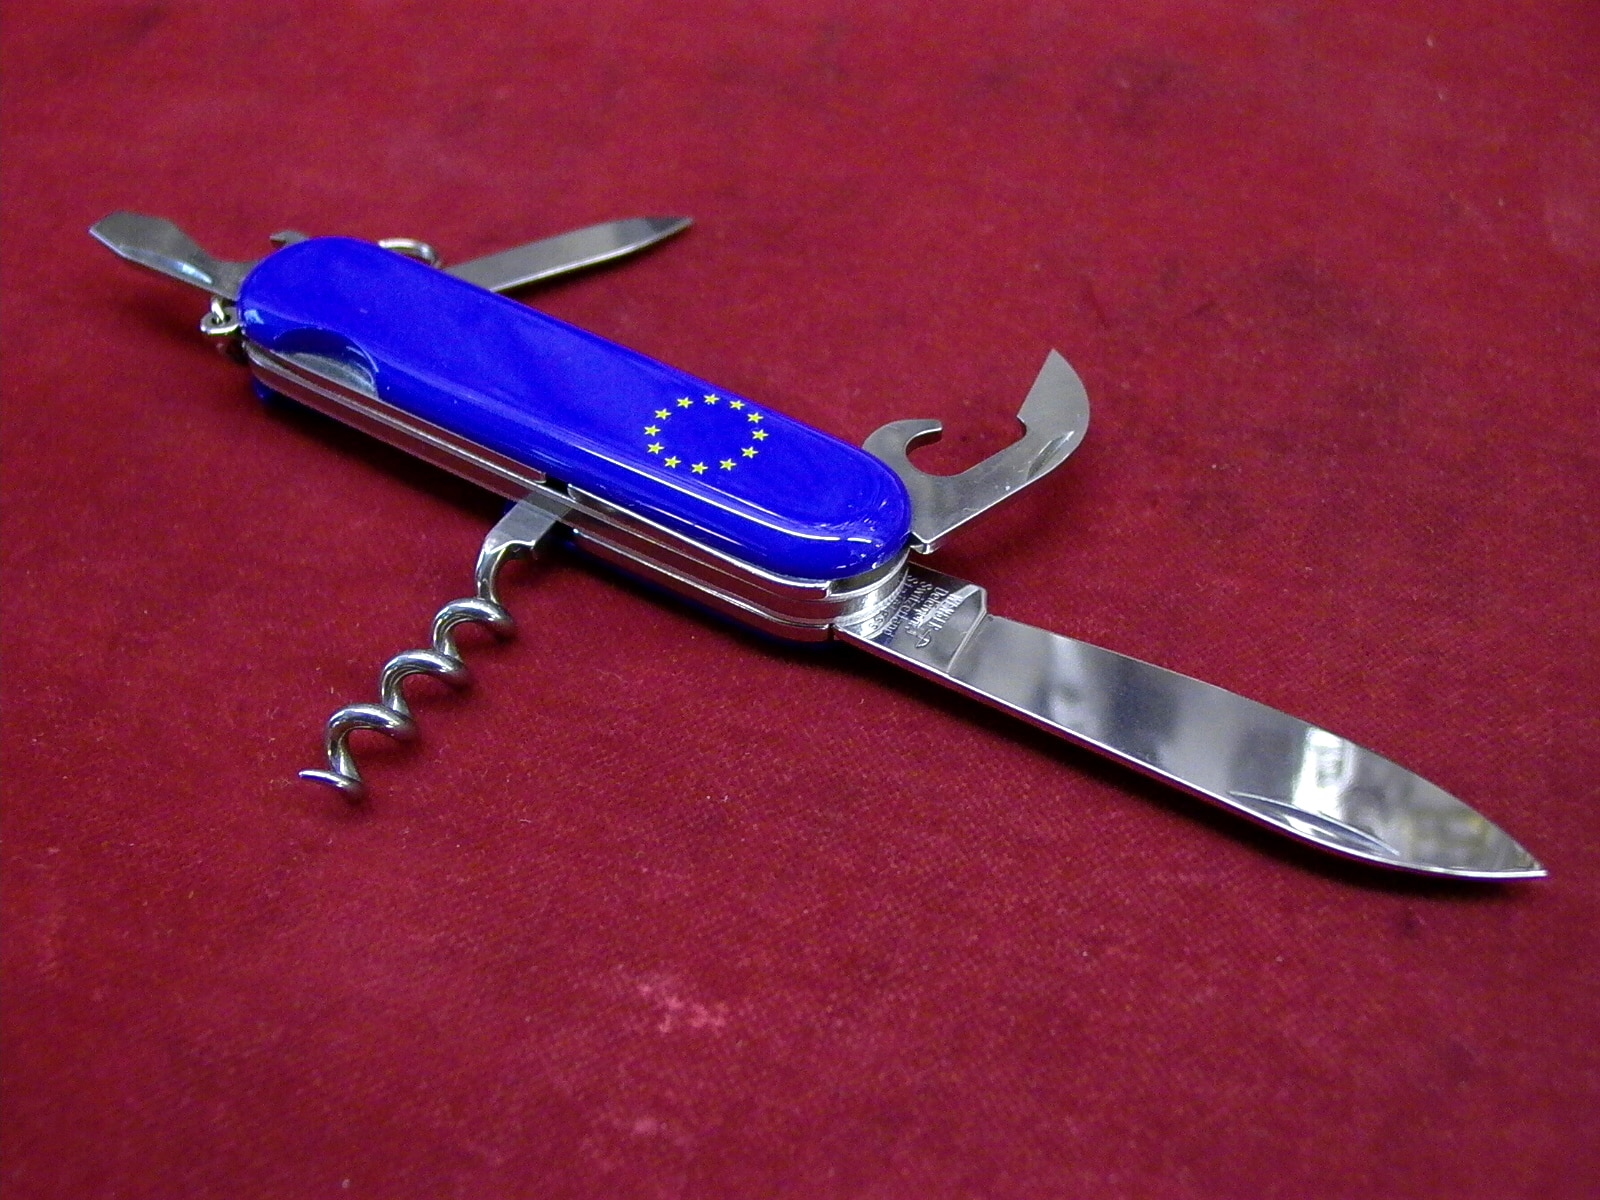 The colours of the European Union have even made their way on to the most Swiss of items, the army knife (swissinfo.ch)